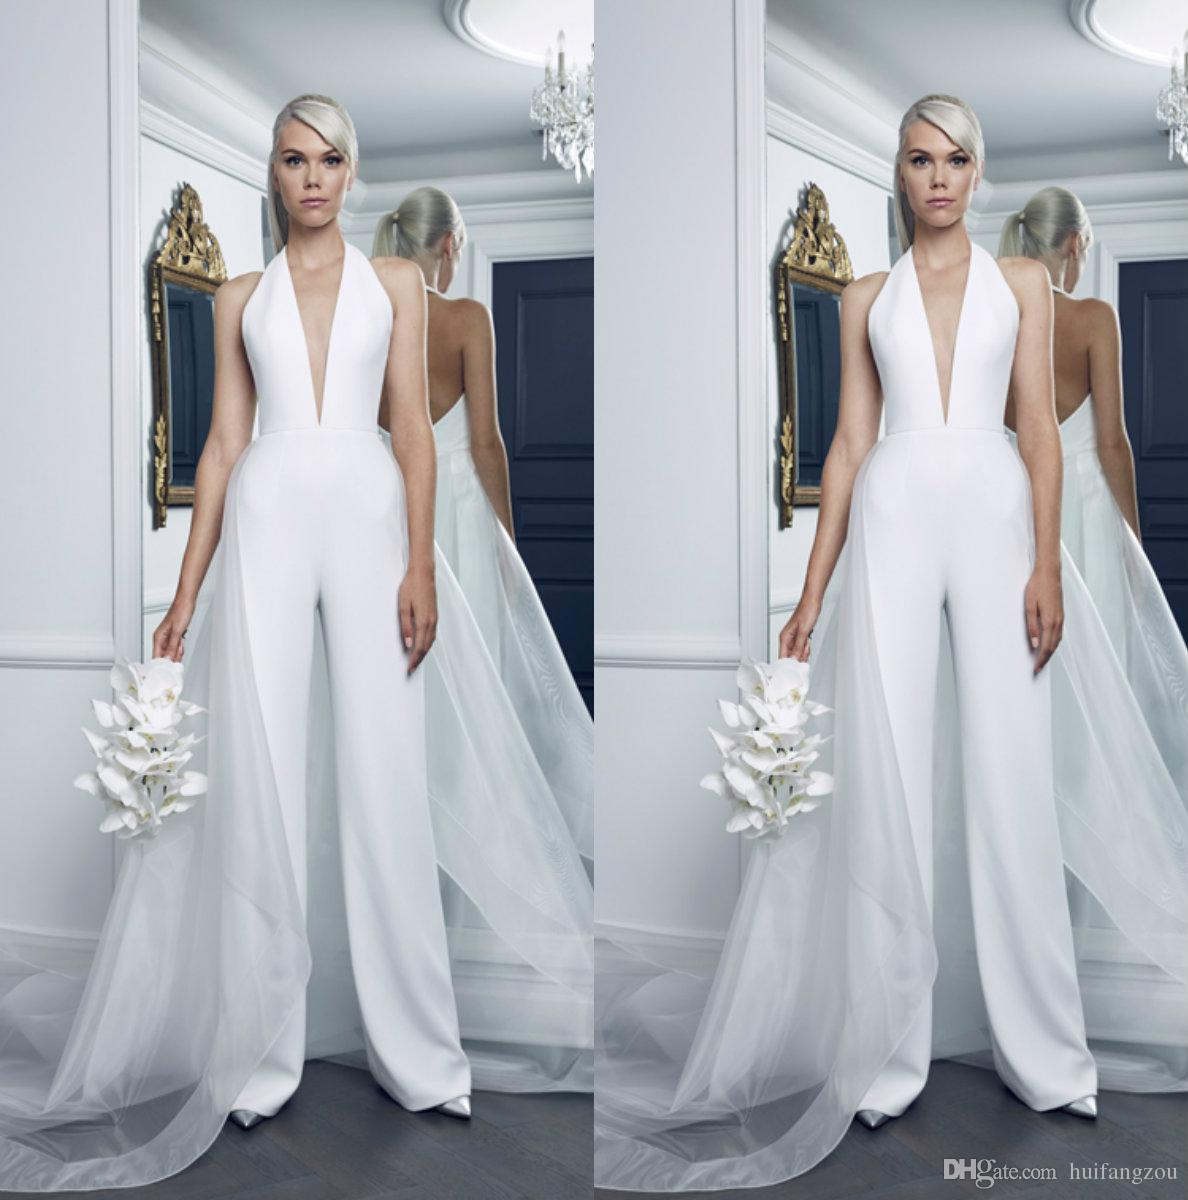 052ca3819cd Discount Modest Plus Size Wedding Dresses Women Jumpsuits With Tulle  Overskirt Deep V Neck Pure White Beach Wedding Dress Bridal Gowns Sexy Back  Beach ...